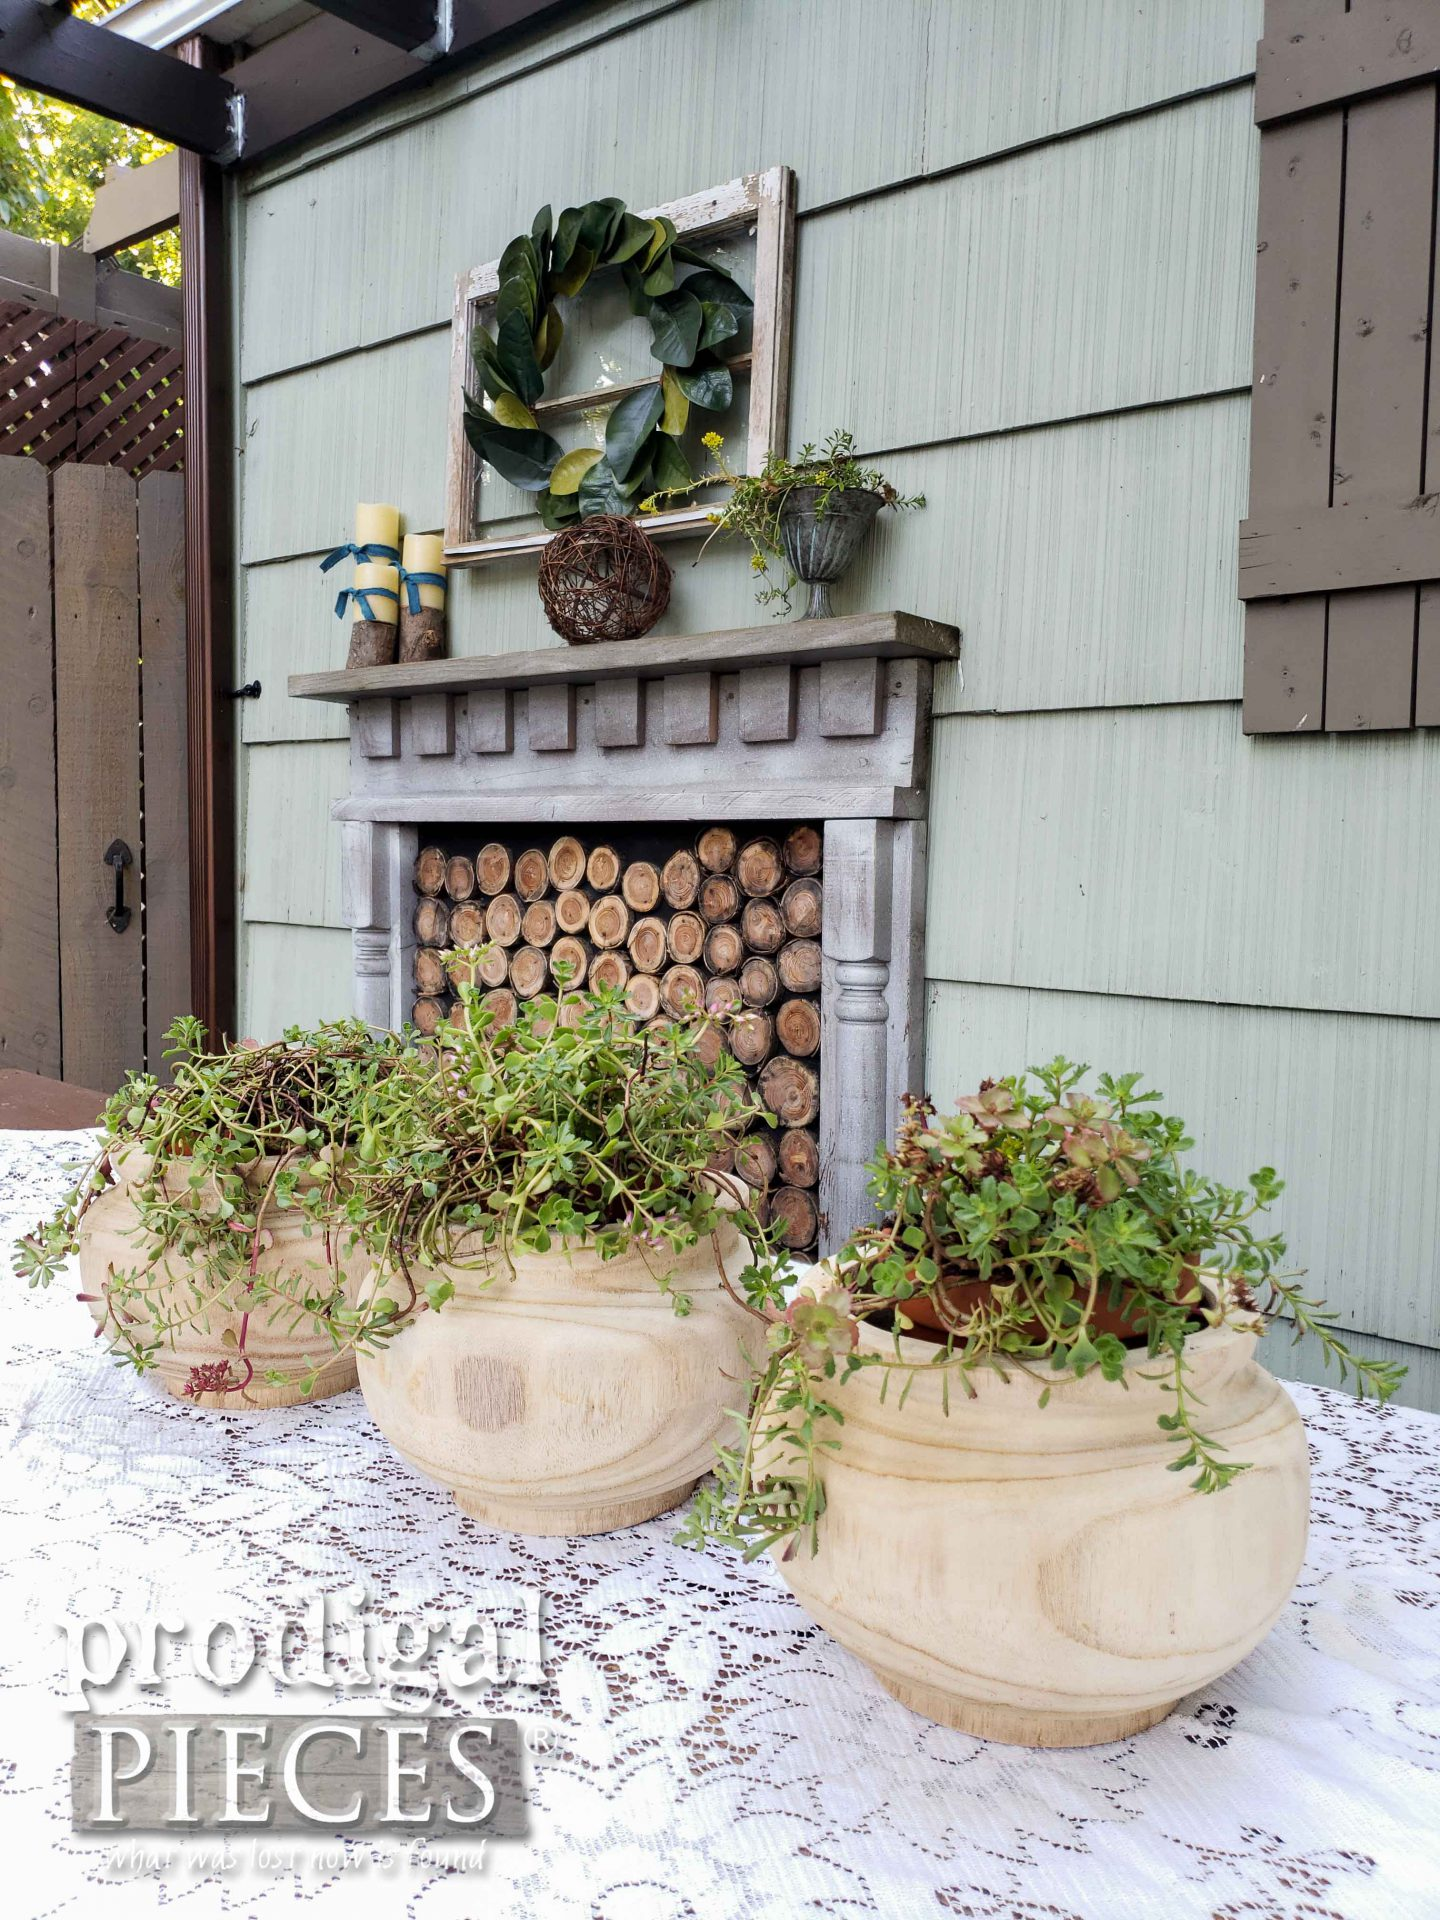 Farmhouse Patio Decor by Larissa of Prodigal Pieces | prodigalpieces.com #prodigalpieces #diy #patio #outdoor #home #homedecor #farmhouse